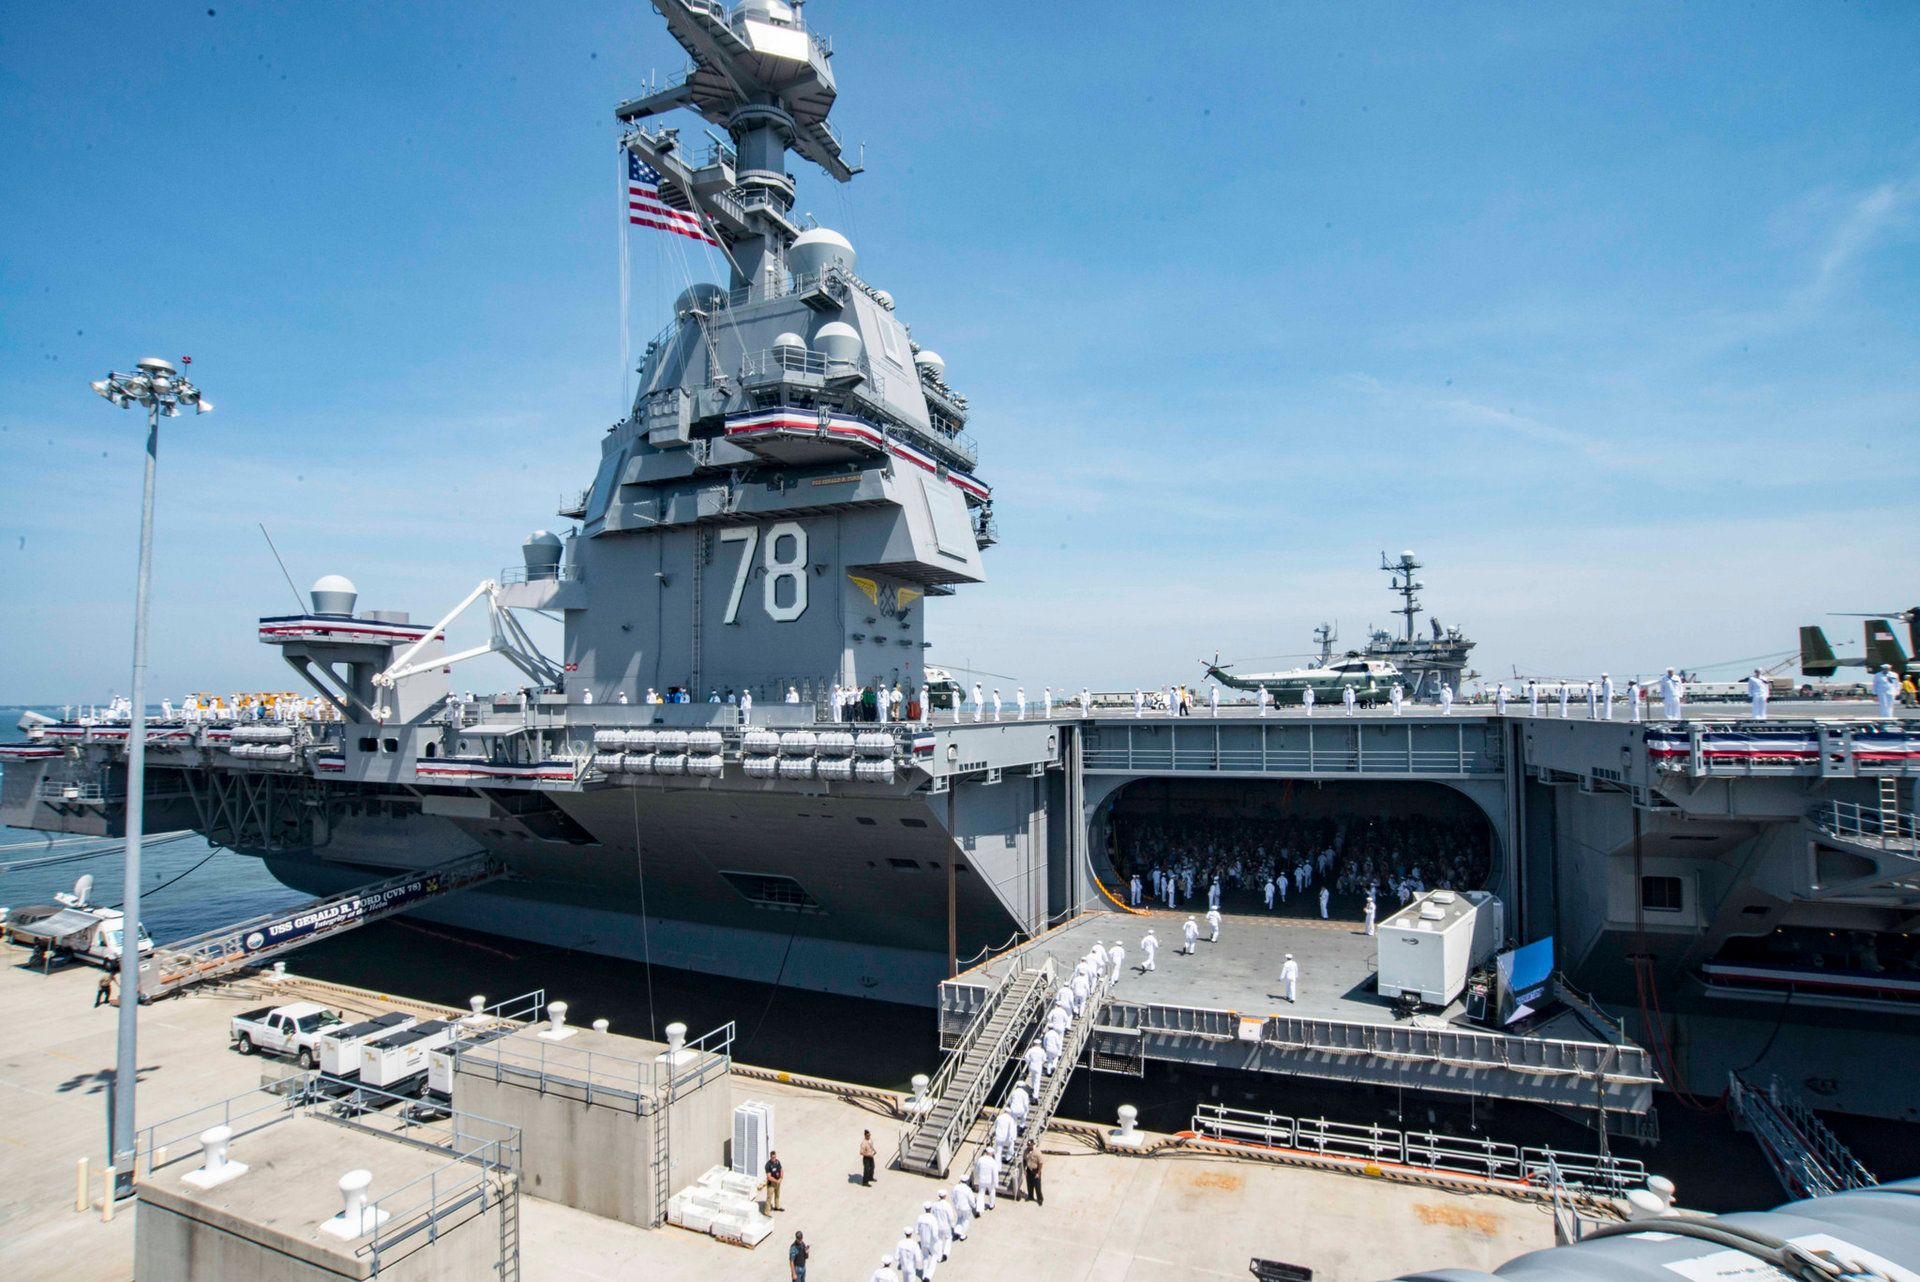 The Navy S New Urinal Free Supercarrier Is Facing A Ton Of Problems Navy Aircraft Carrier Aircraft Carrier Naval Station Norfolk